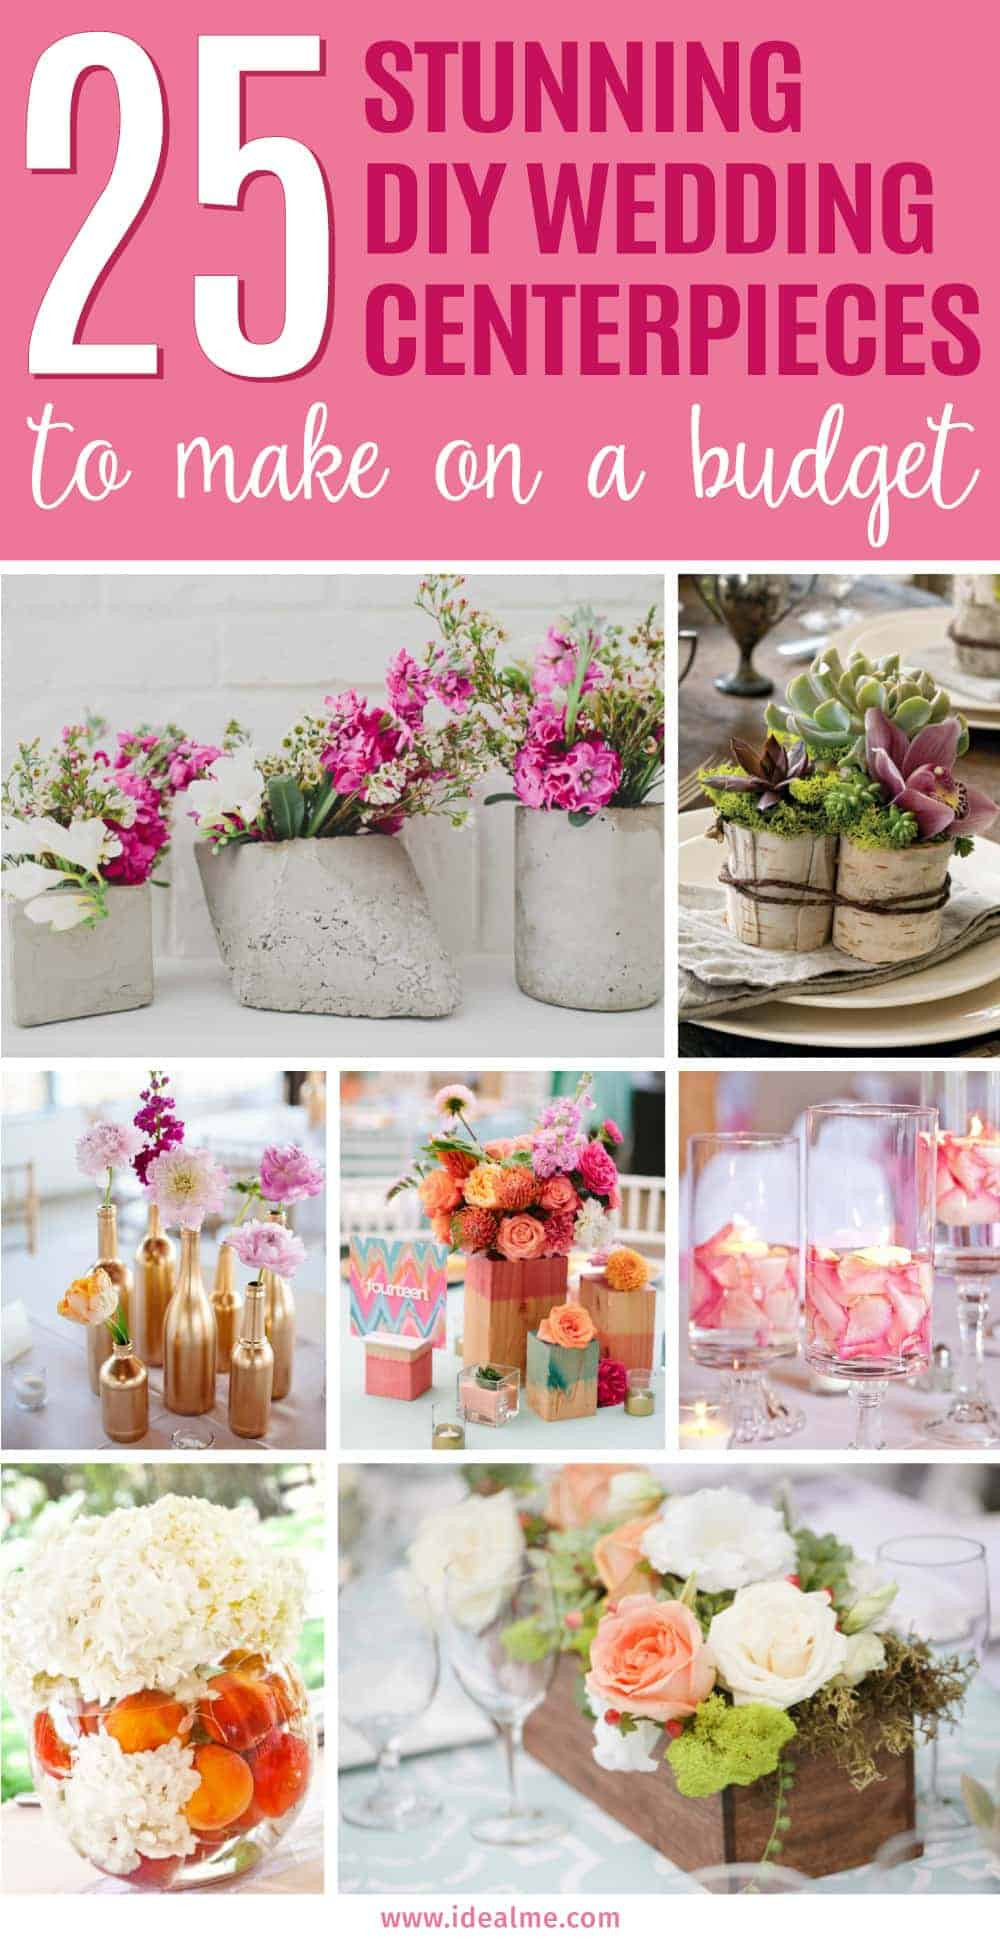 Best ideas about DIY Centerpieces Wedding . Save or Pin 25 Stunning DIY Wedding Centerpieces to Make on a Bud Now.